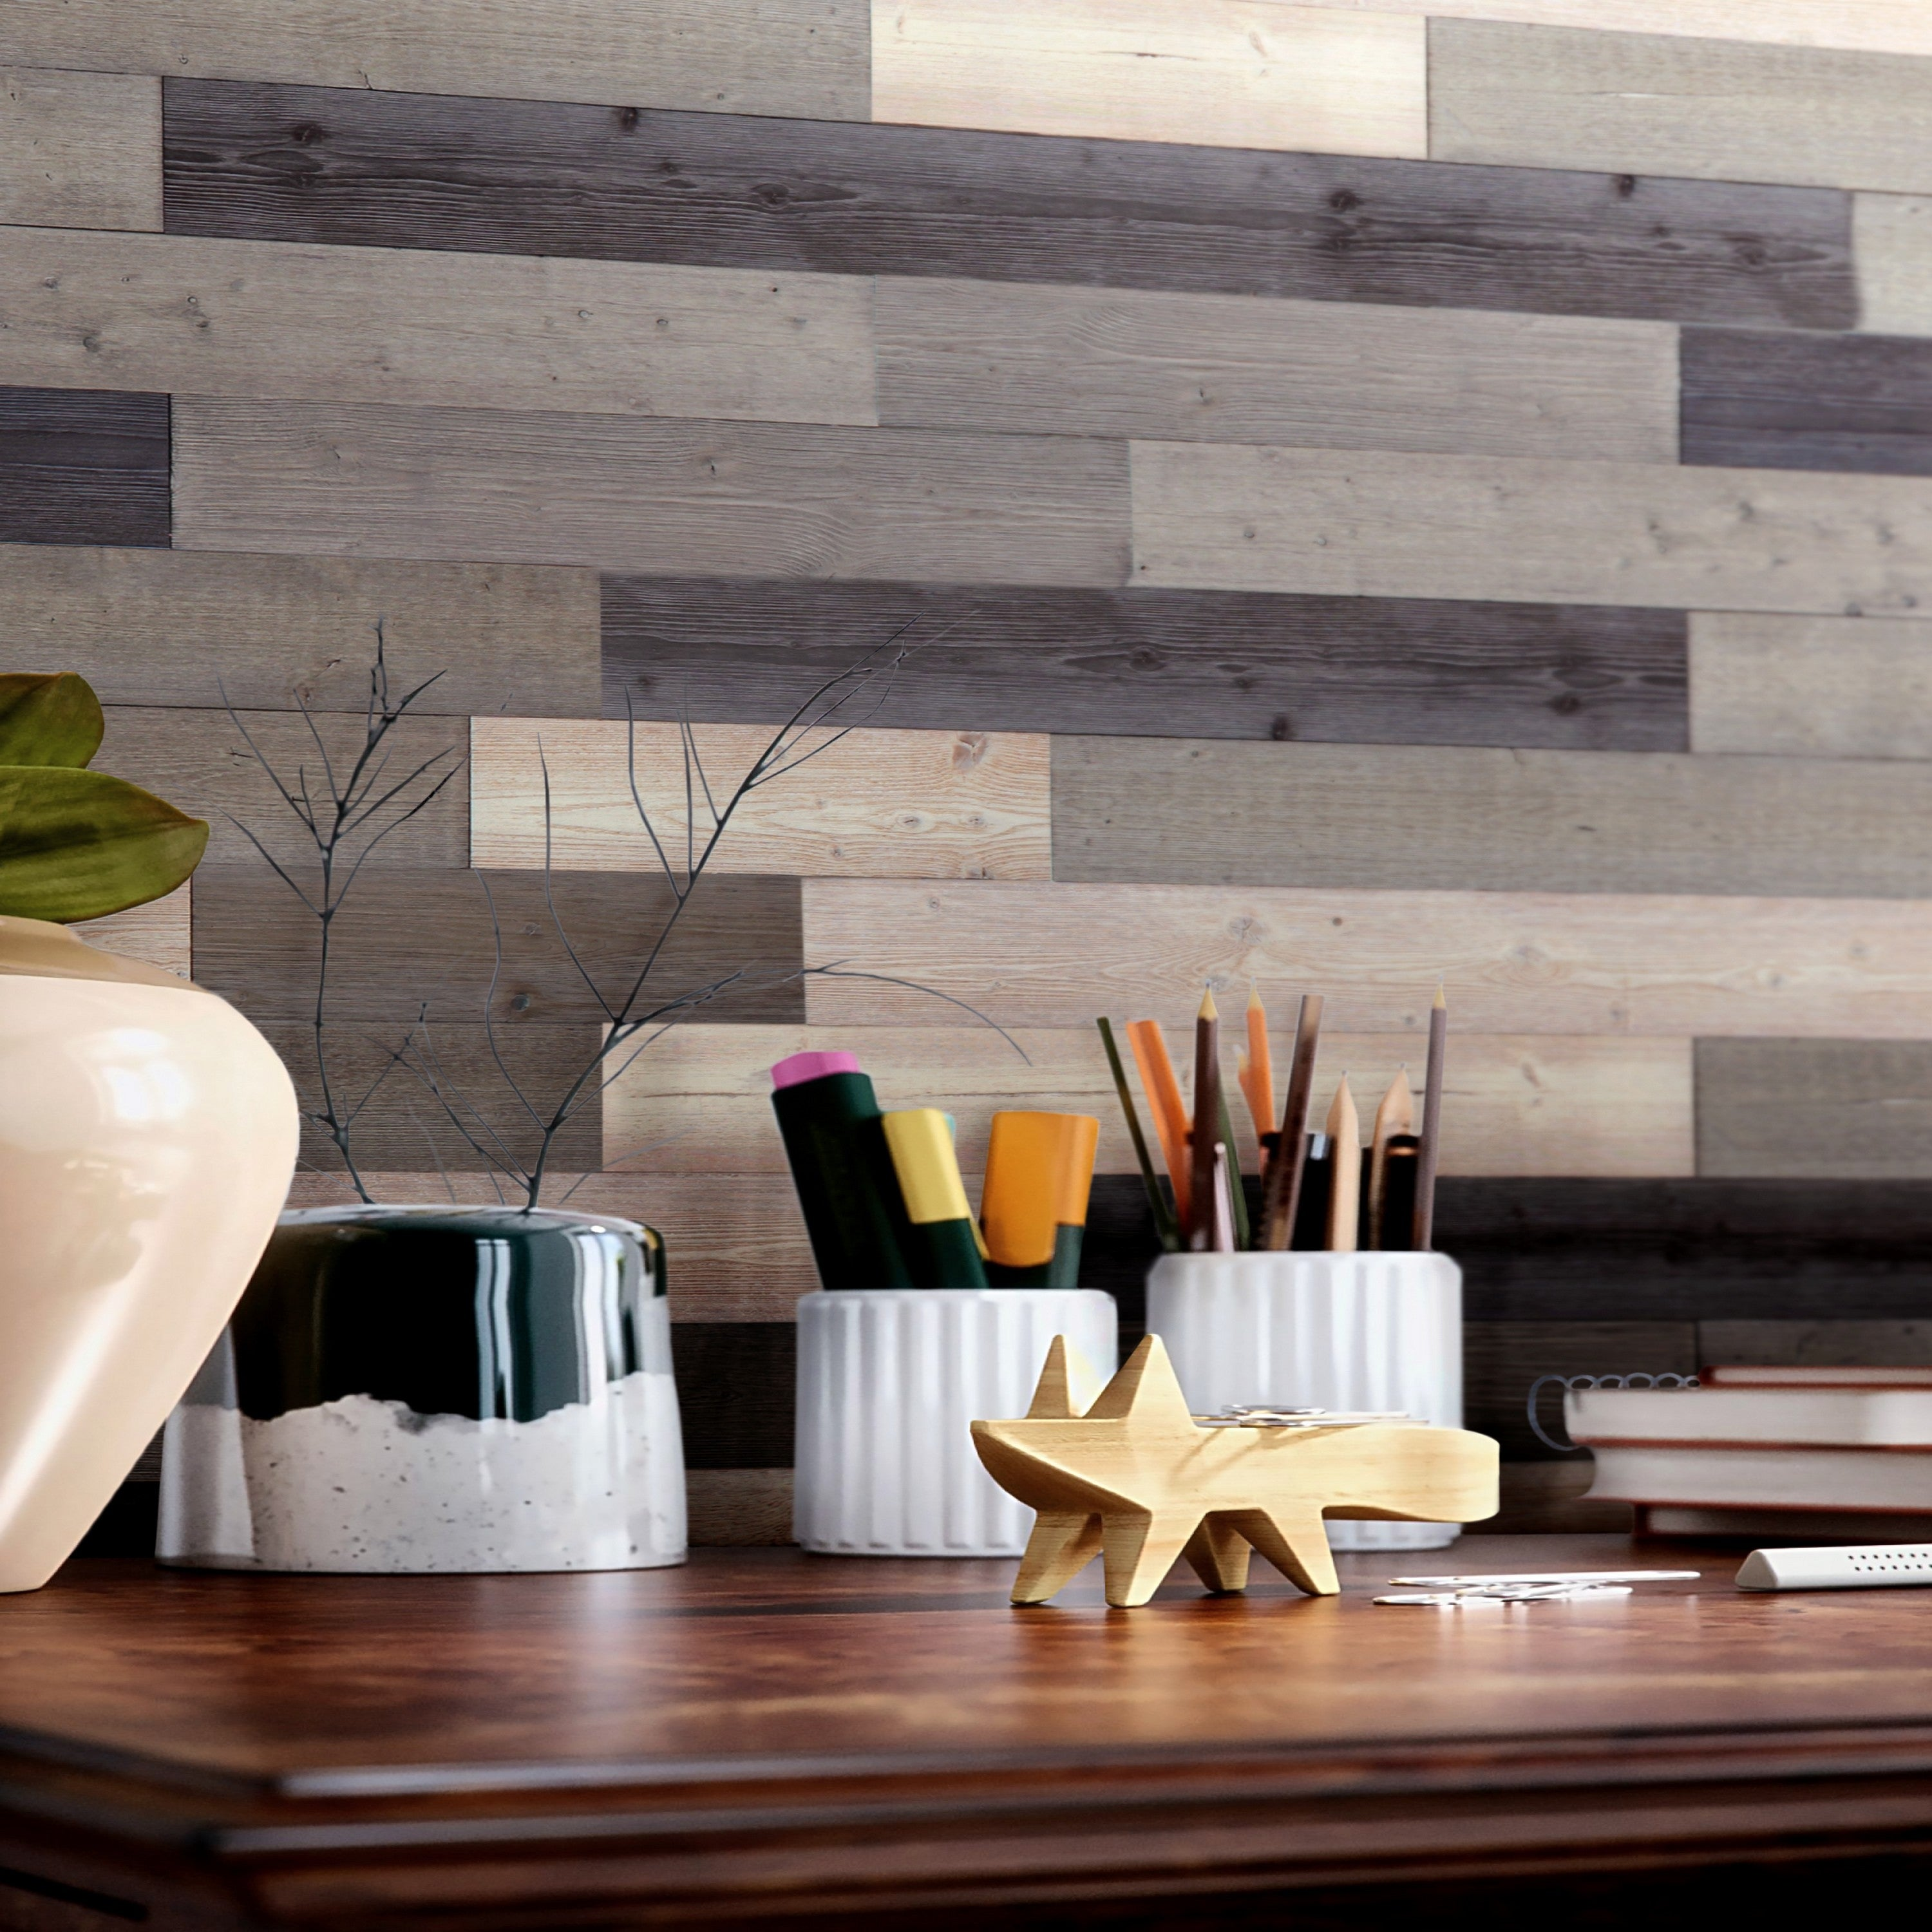 Shop Black Friday Deals On Reclaimed Rustic Wall Planks Self Adhesive Barn Wood Wall Panels 2box Overstock 31437600